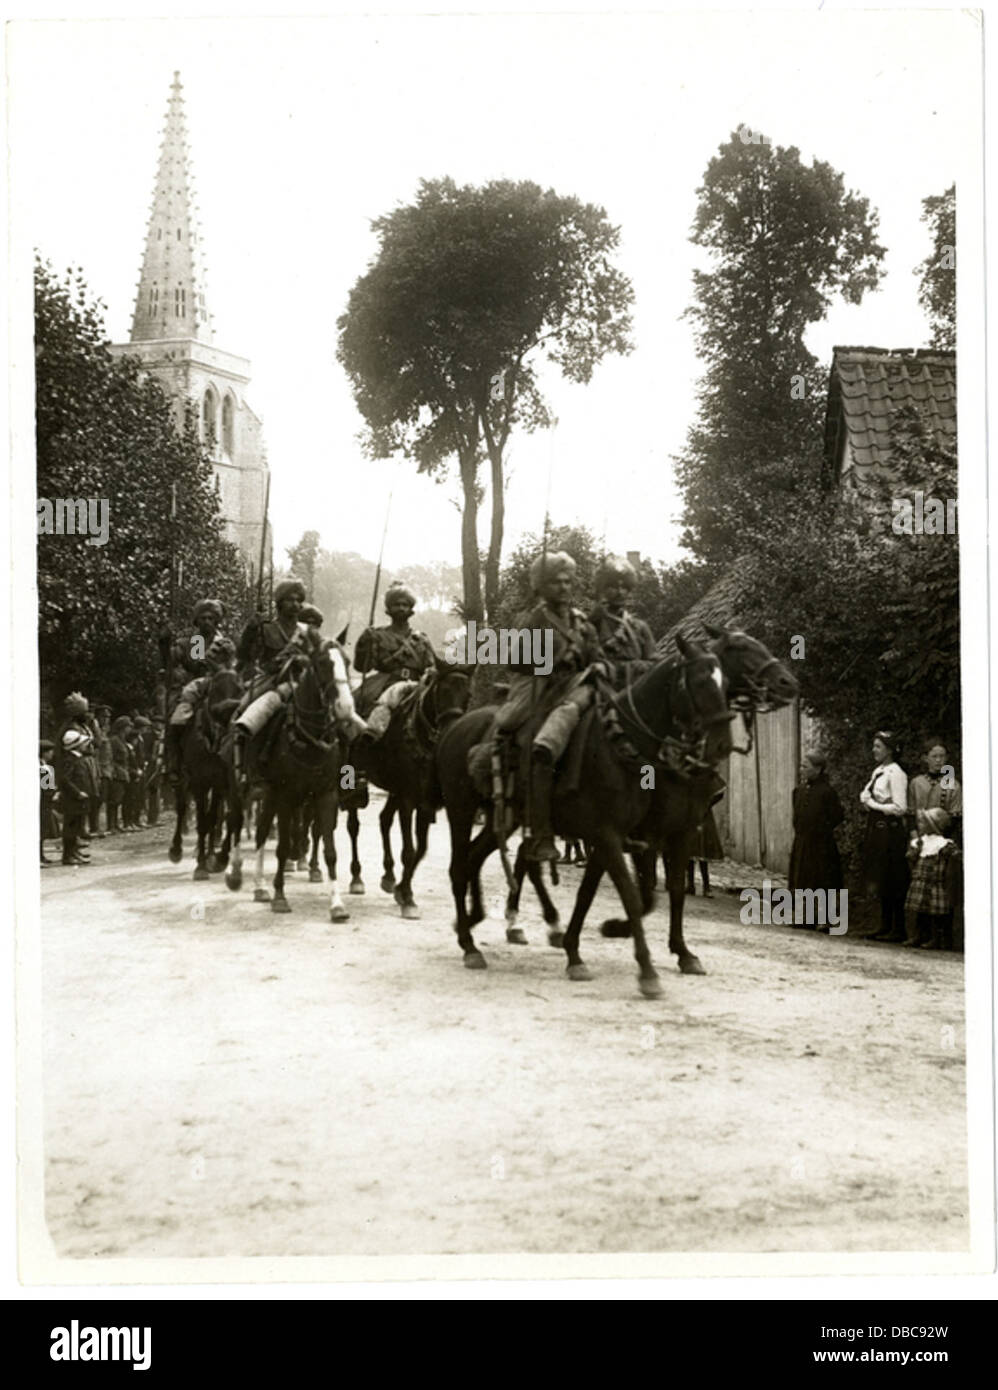 Indian cavalry marching through a French village Estr C3 A9e Blanche (Photo 24-116) - Stock Image